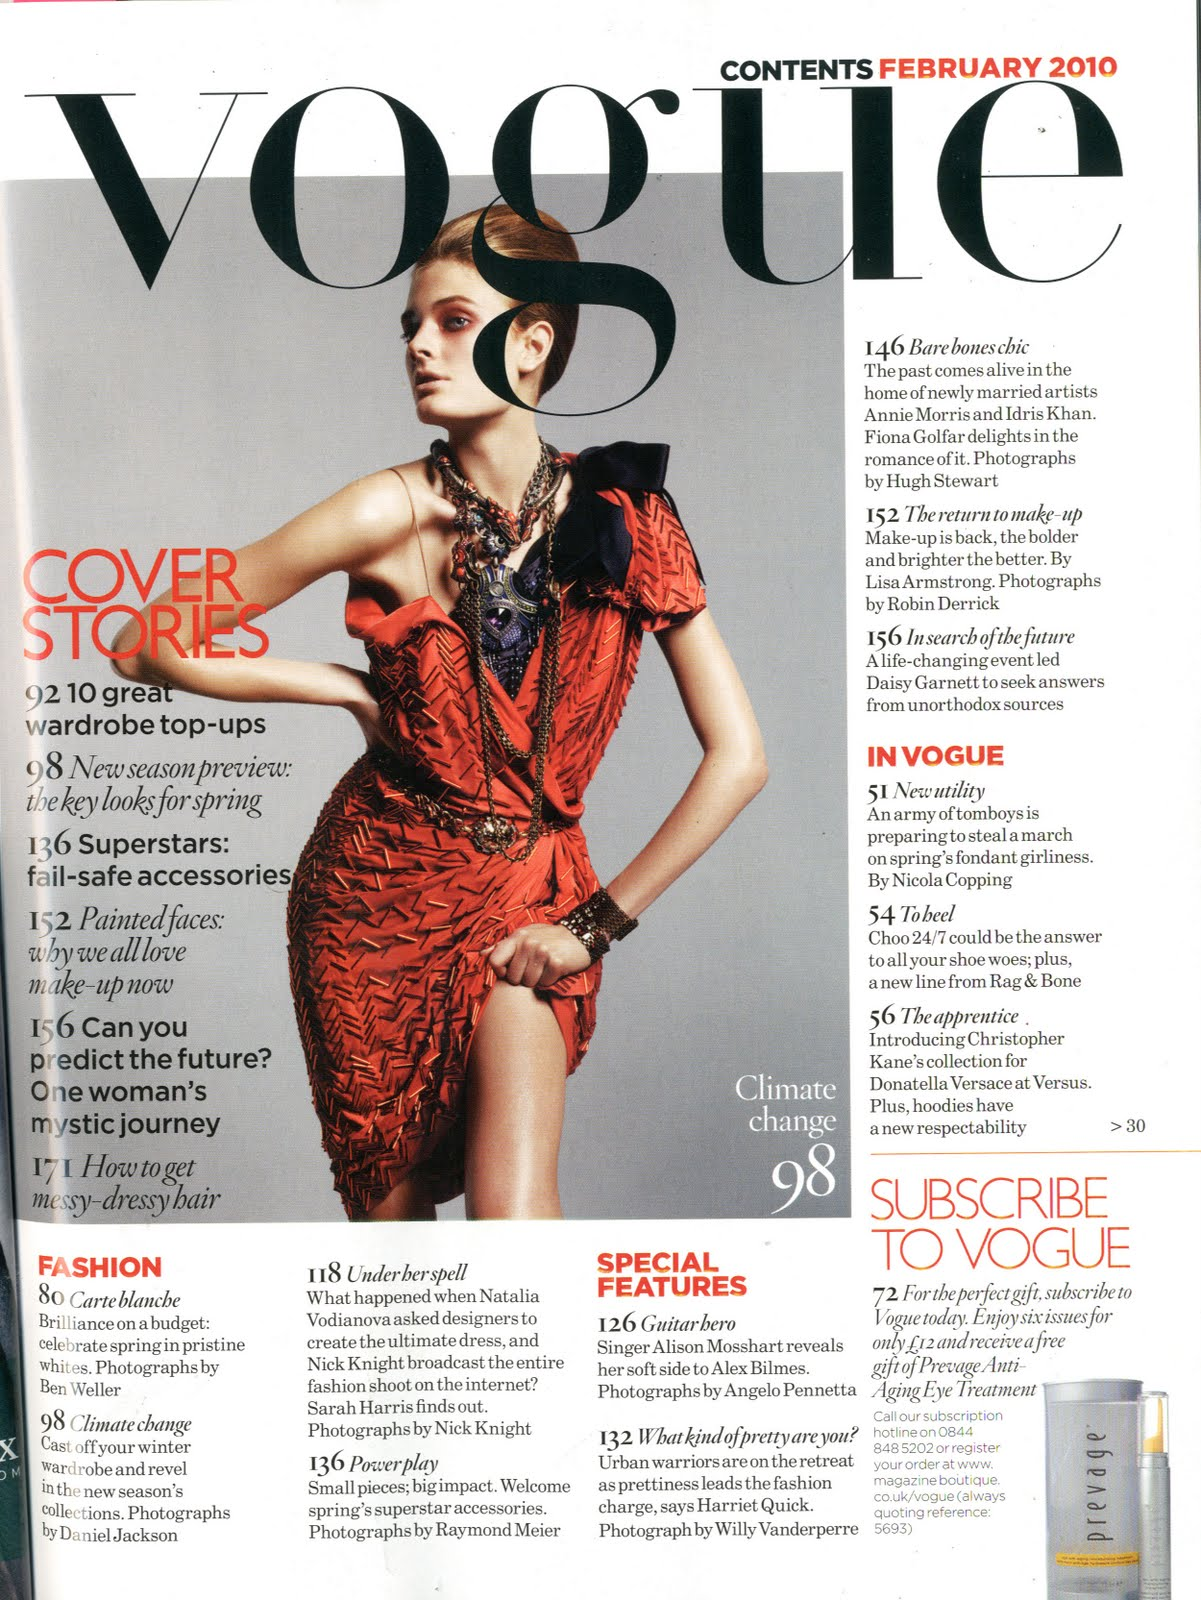 Nicole7128 Analysis Of Vogue 39 S Contents Page